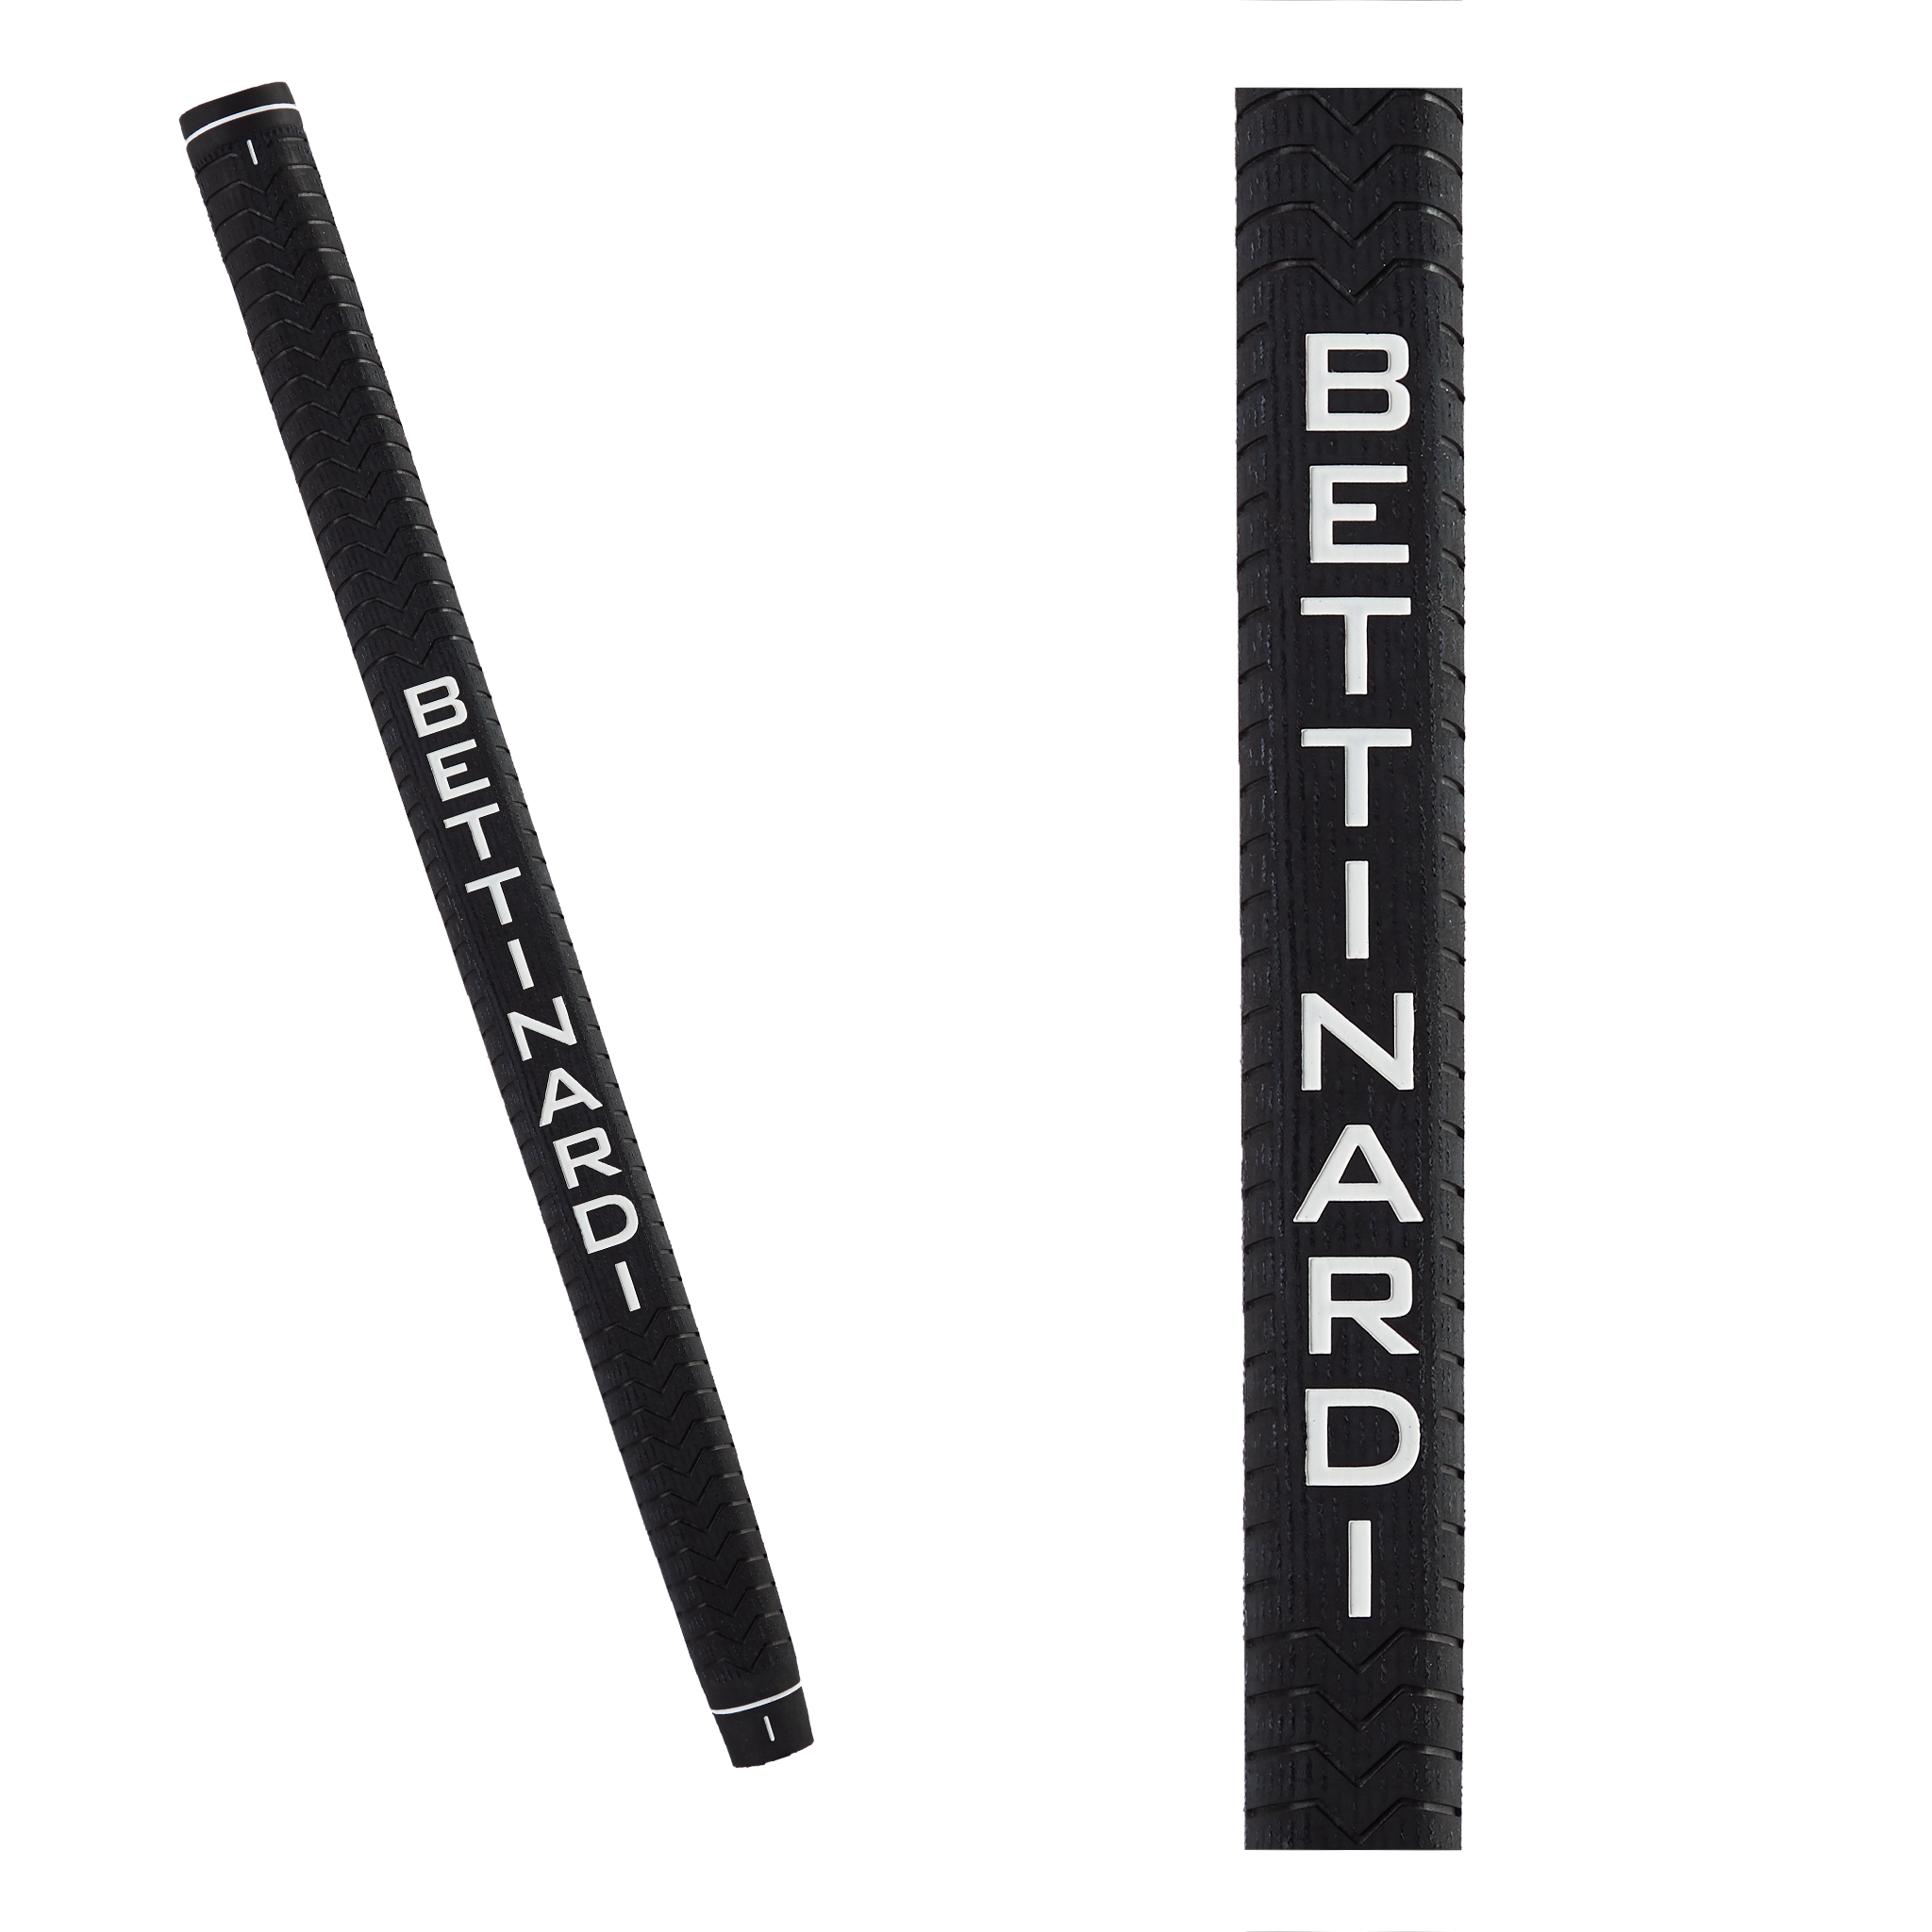 Bettinardi 15